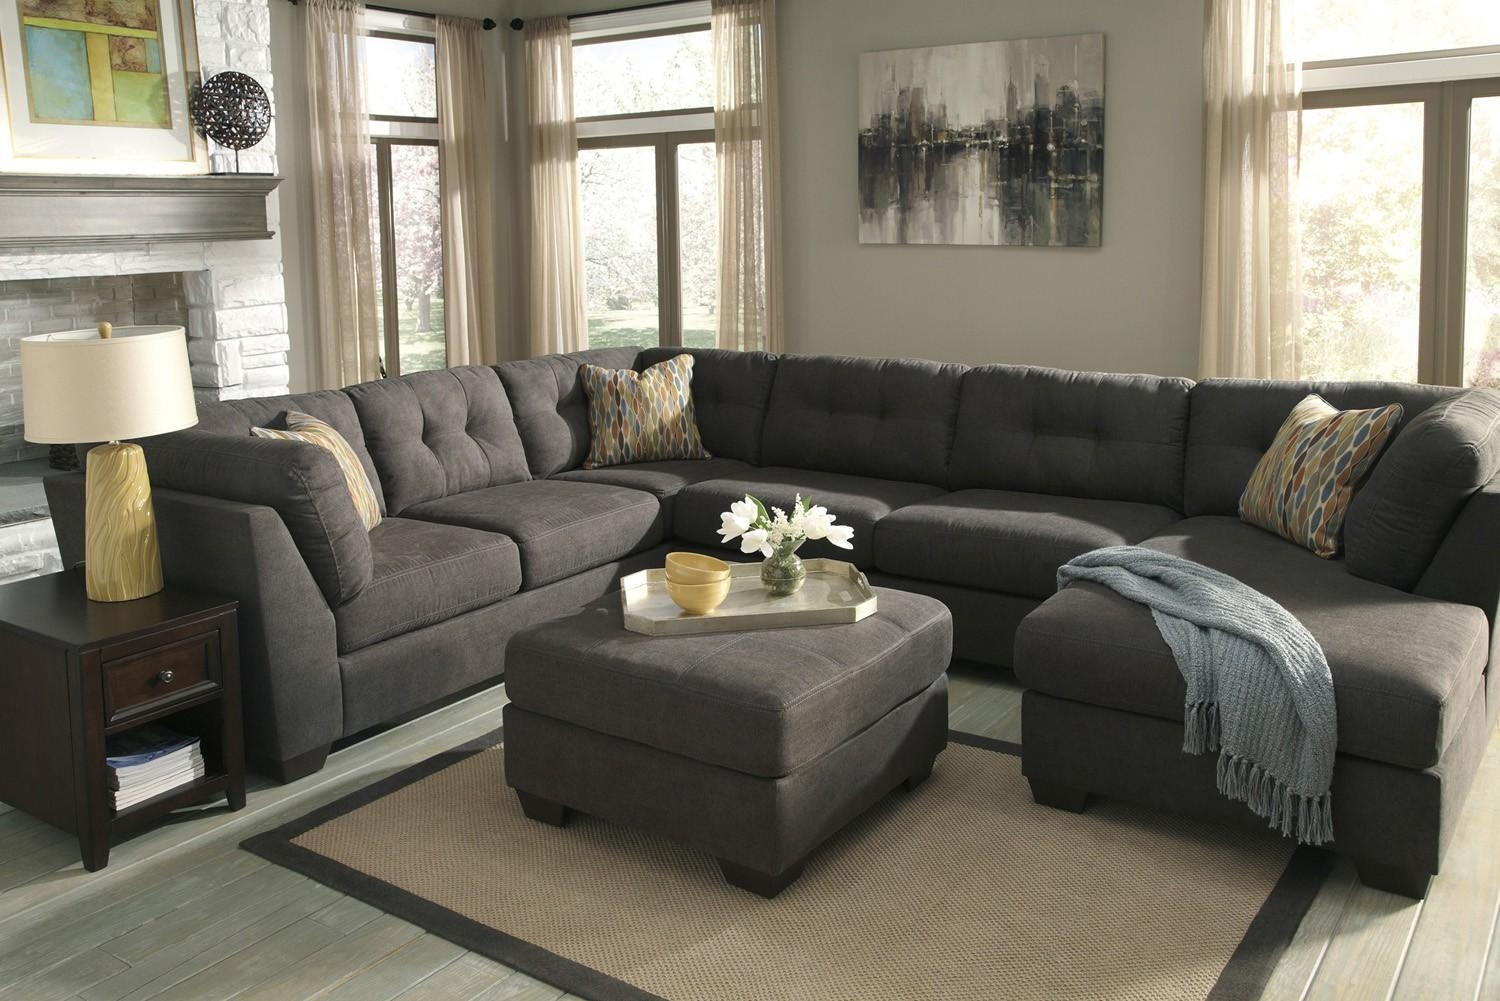 Delta City Steel 3 Piece Sectional Sofa With Left Arm Facing Pertaining To 3 Piece Sectional Sleeper Sofa (Image 9 of 15)